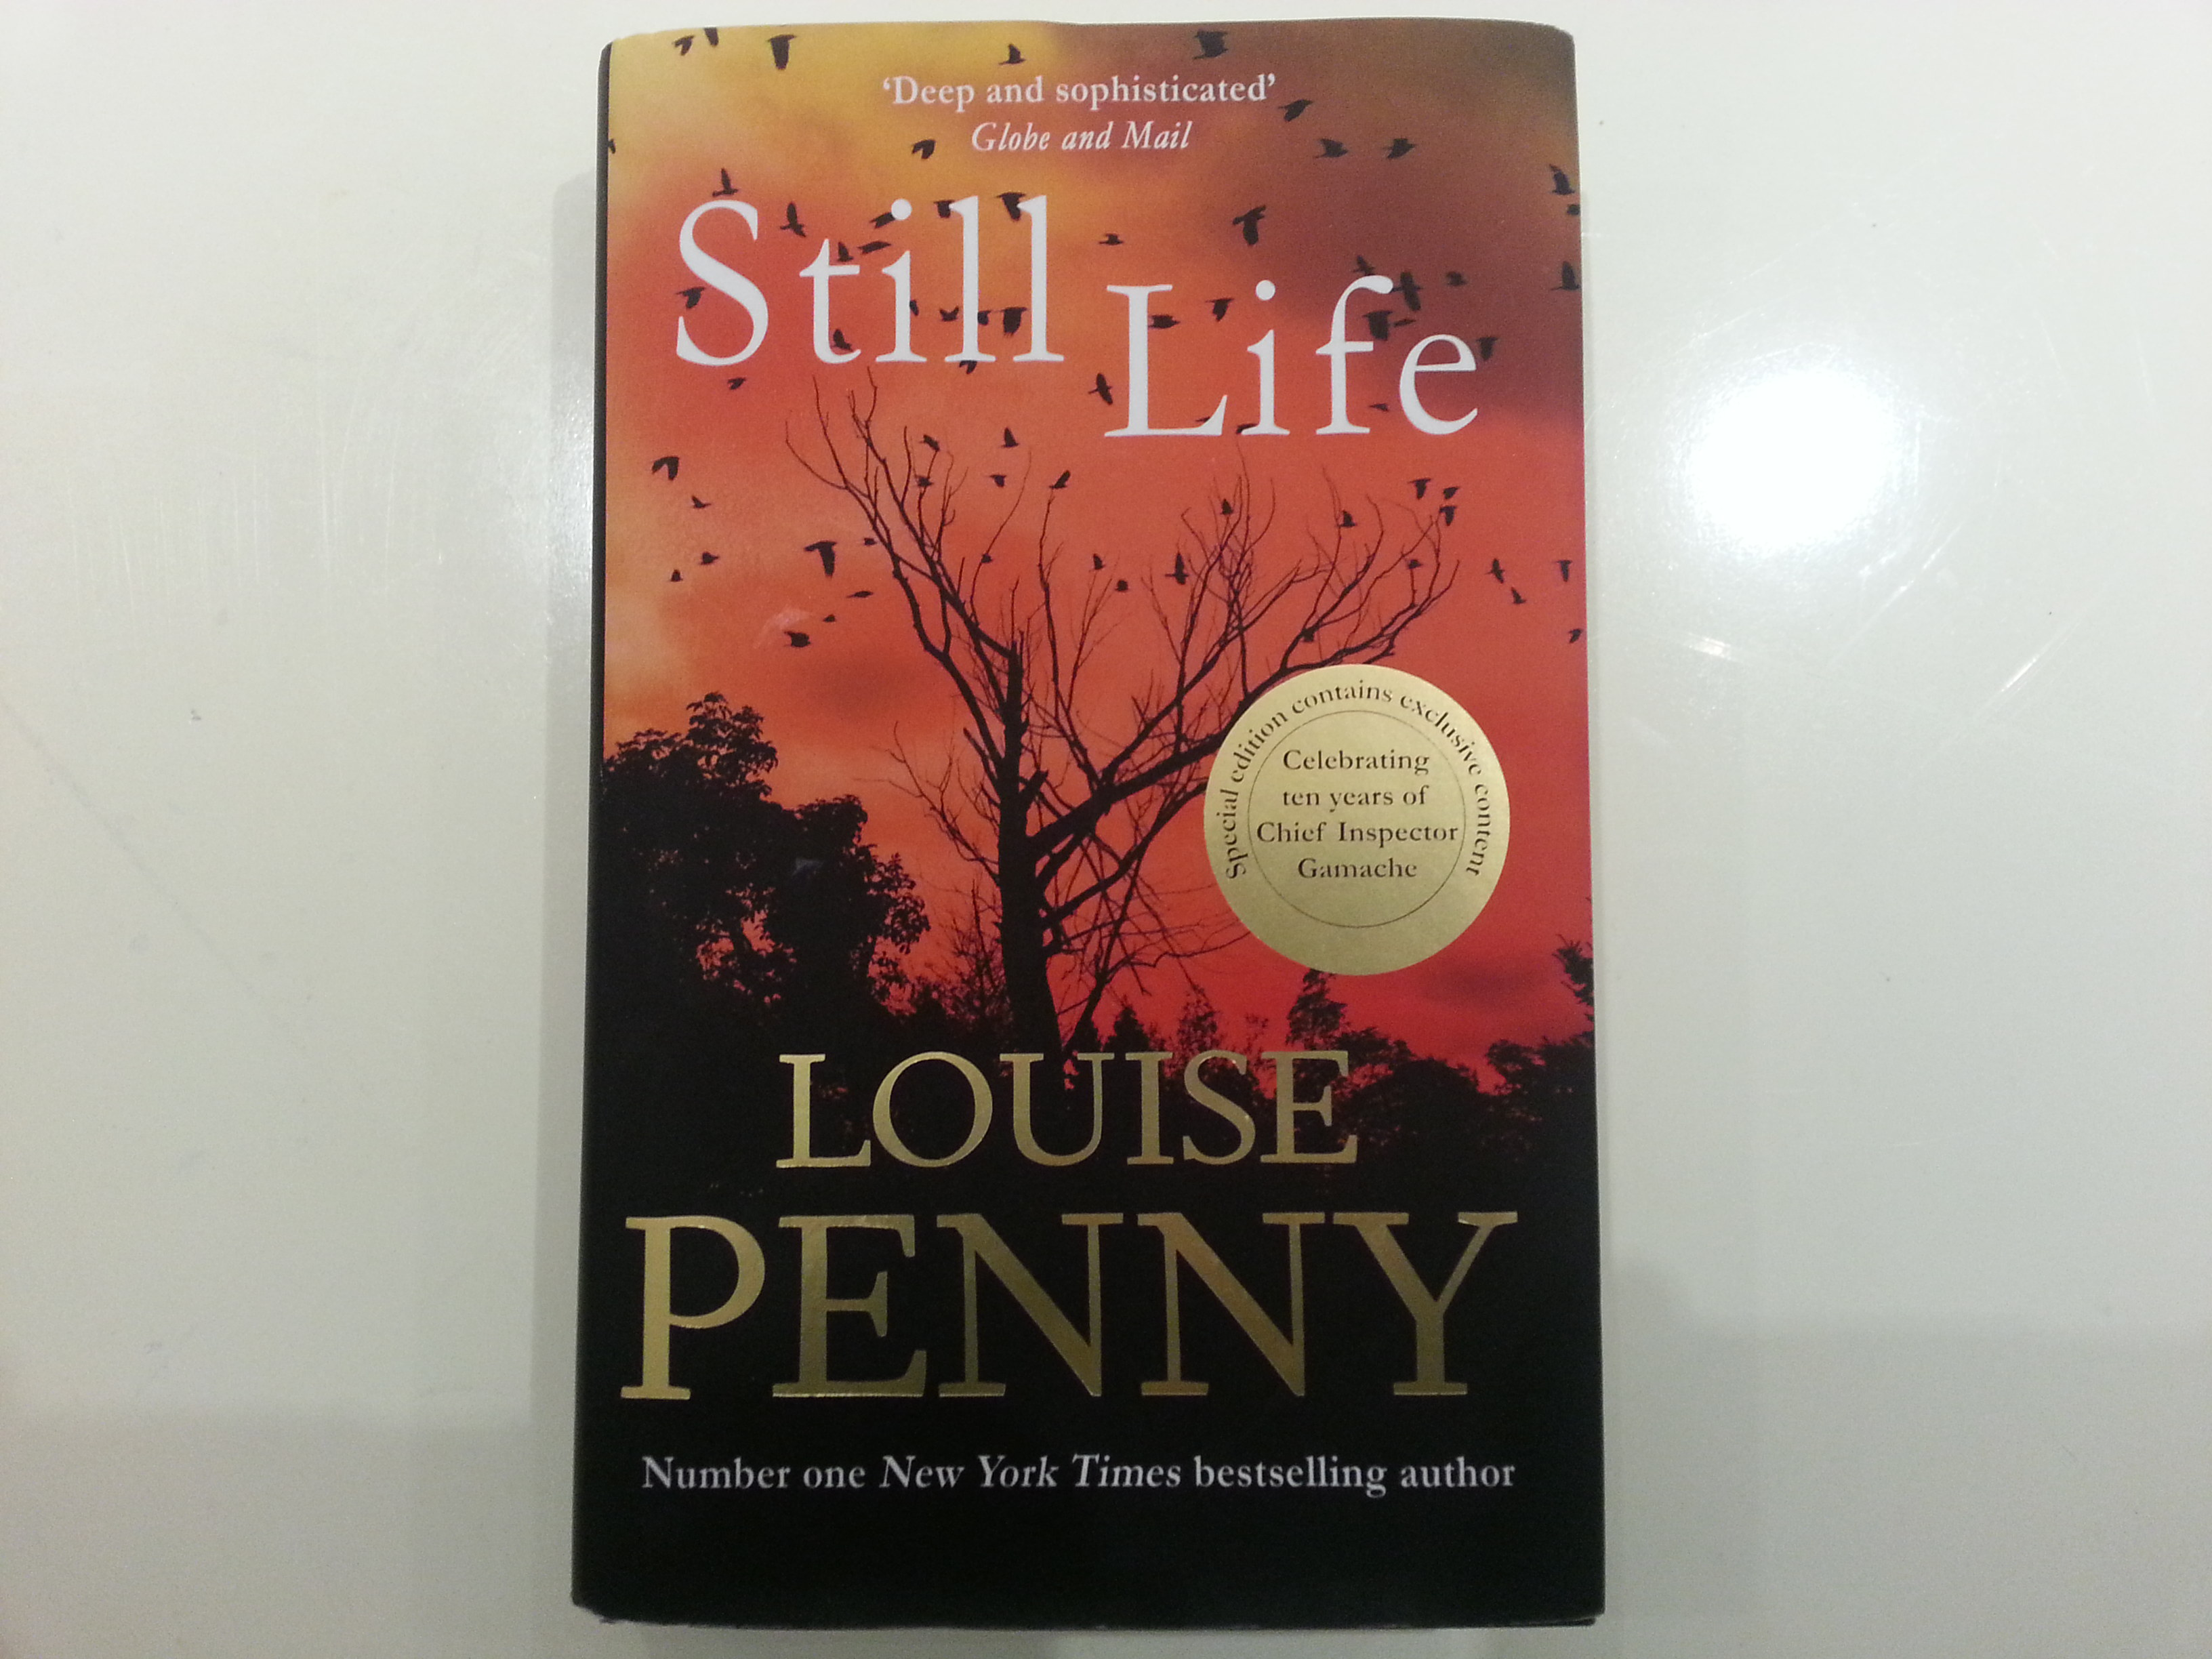 Louise Penny: 10 years of mysteries